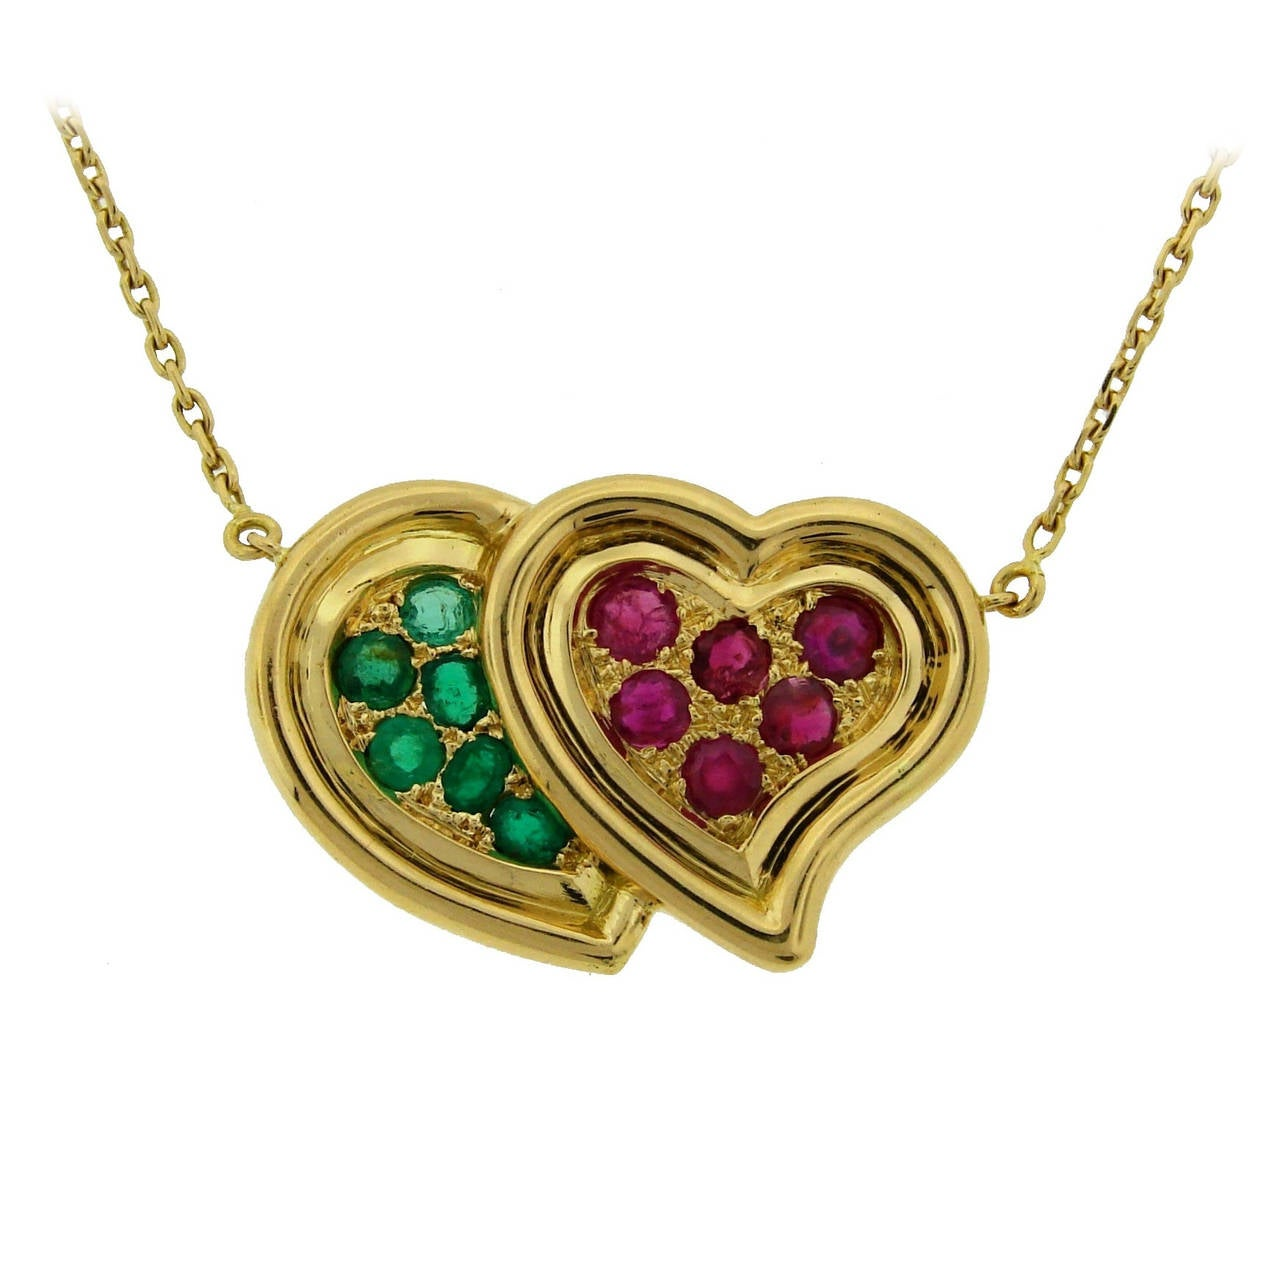 1950s RENE BOIVIN Ruby Emerald Yellow Gold Heart Pendant Necklace 1